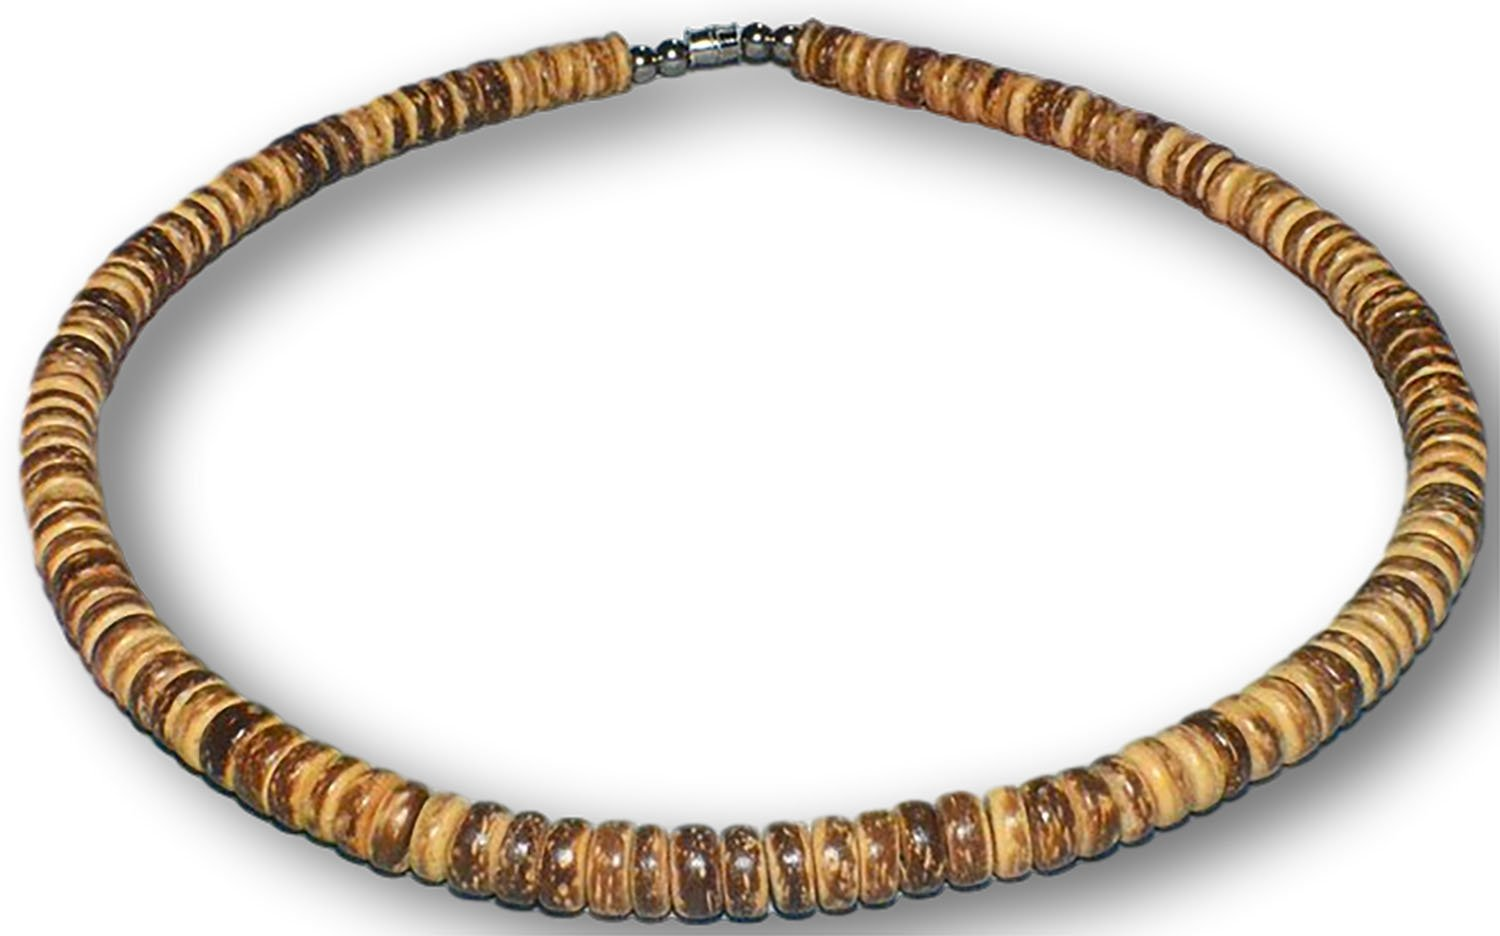 Native Treasure - Brown Tiger Coco Shell Surfer Necklace or Bracelet - 8mm (5/16'') (22)